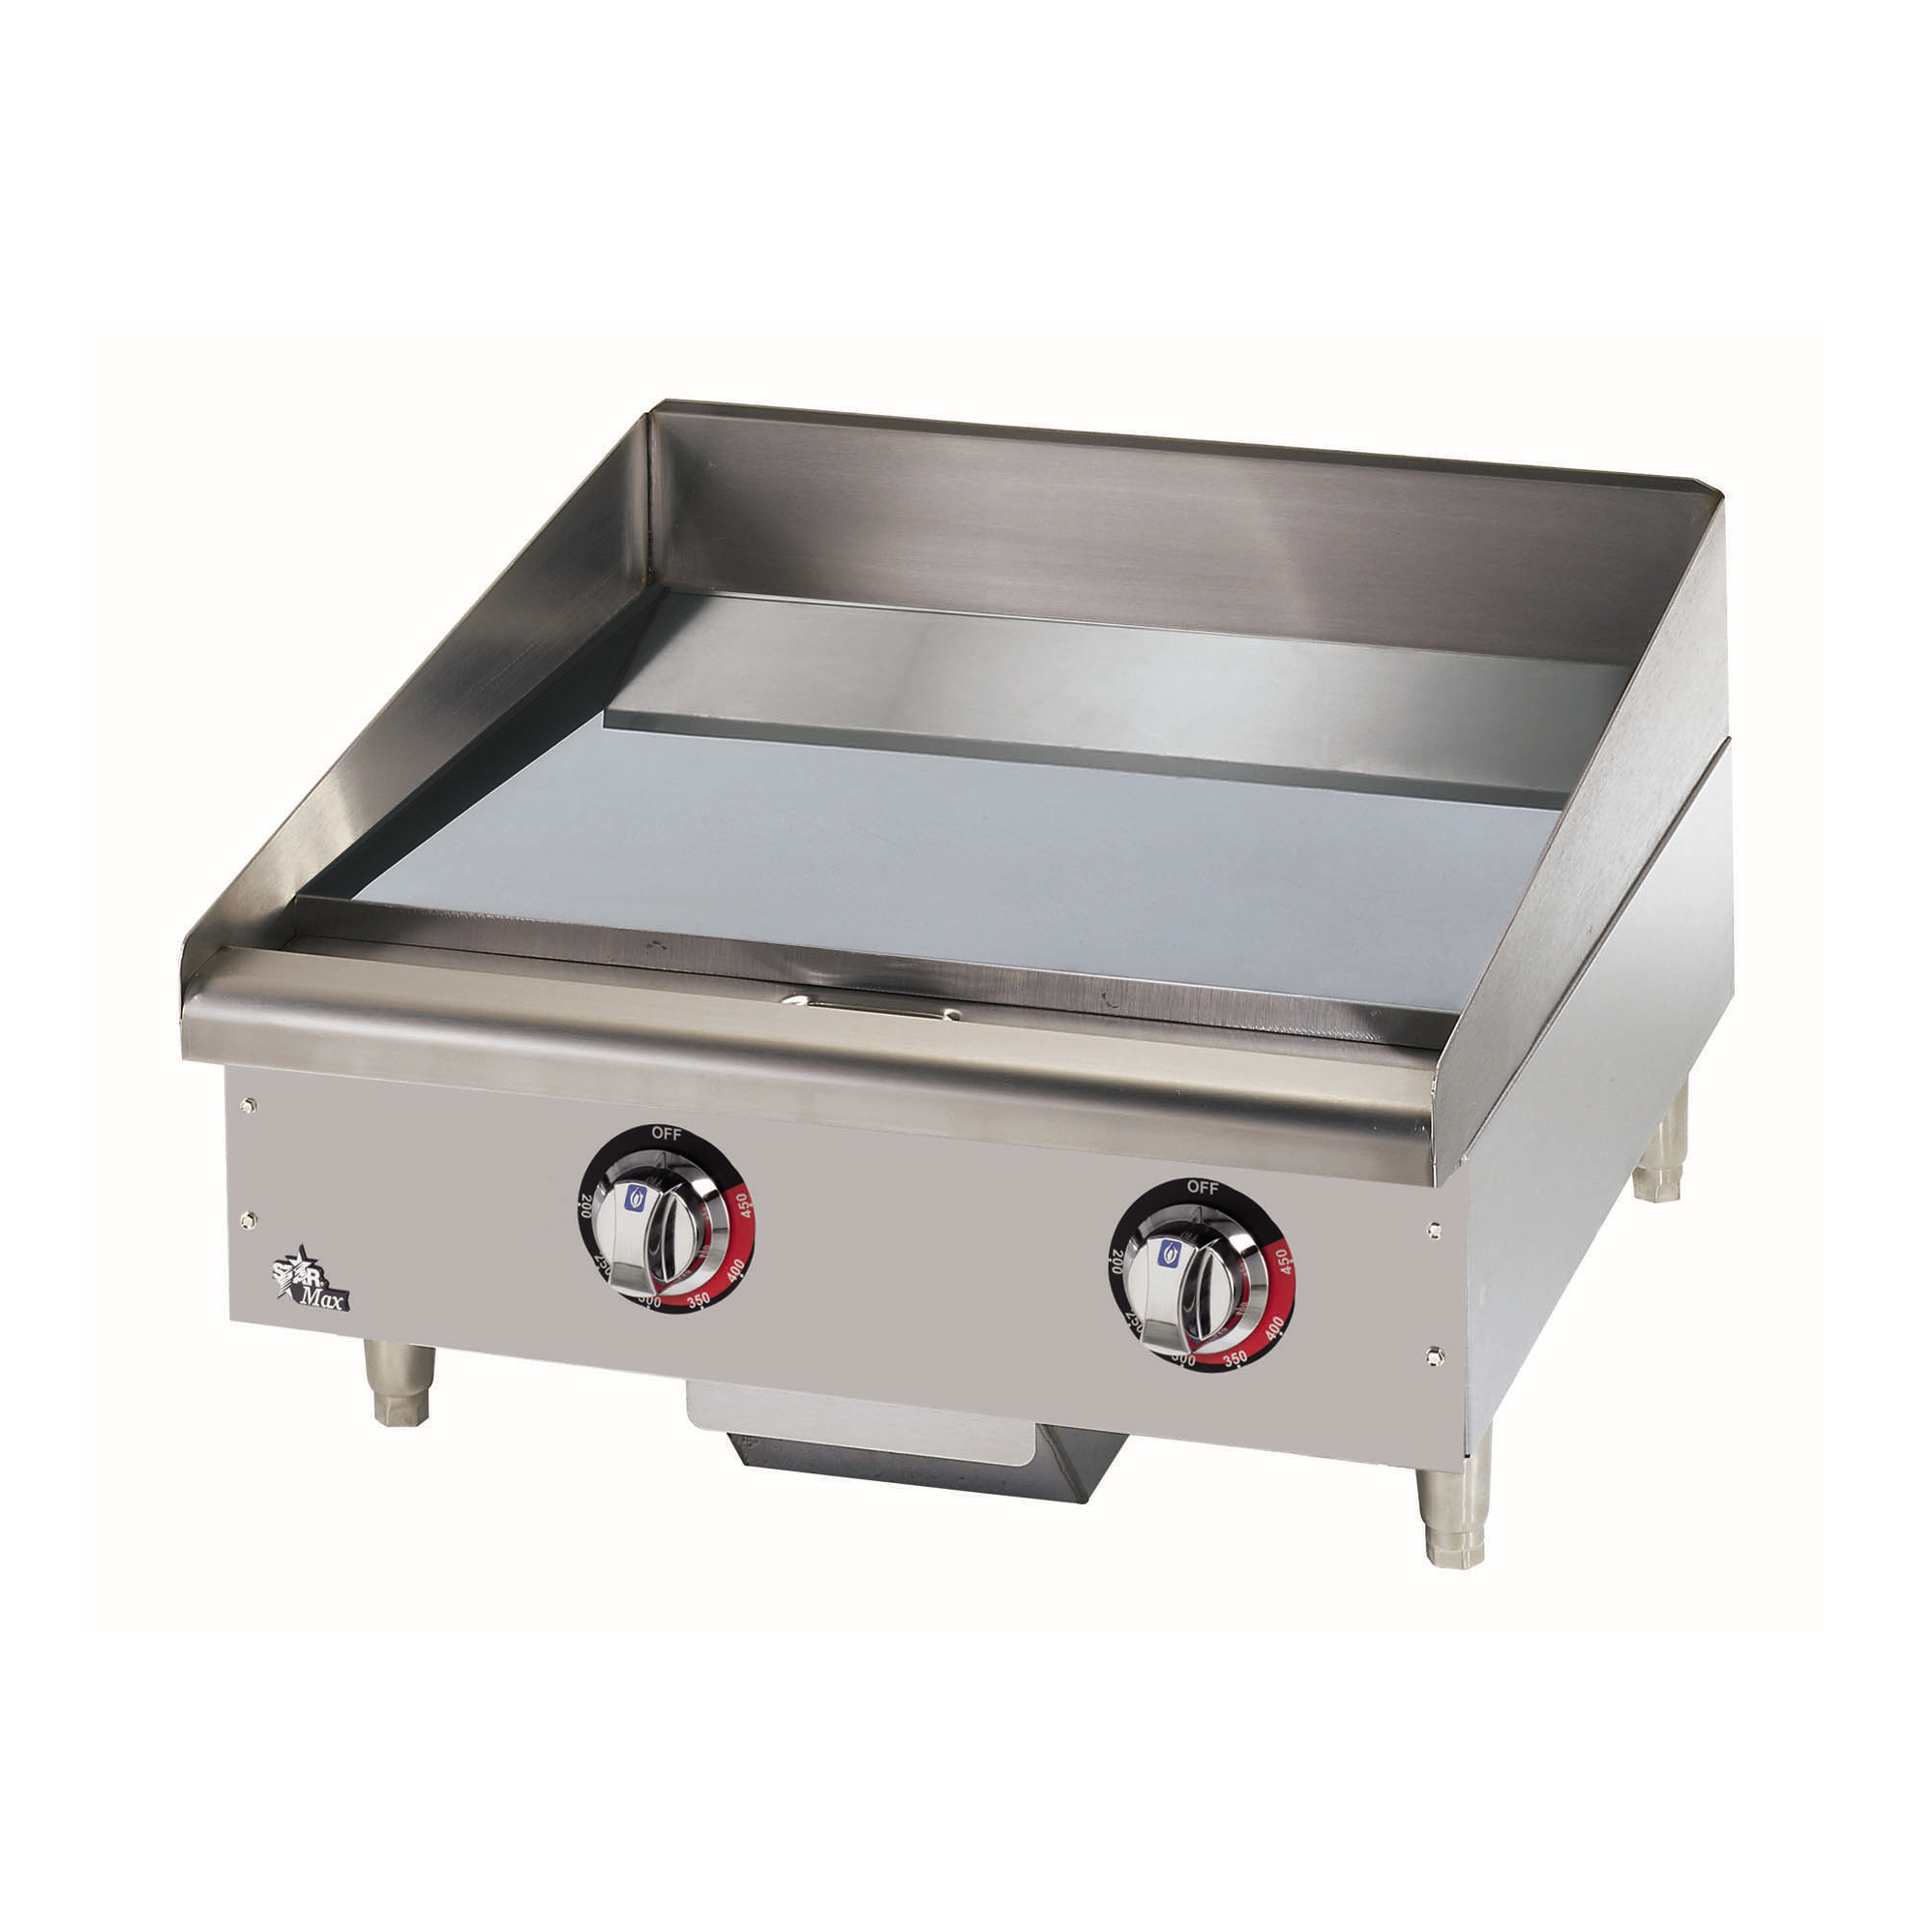 Star 524CHSF griddle, electric, countertop